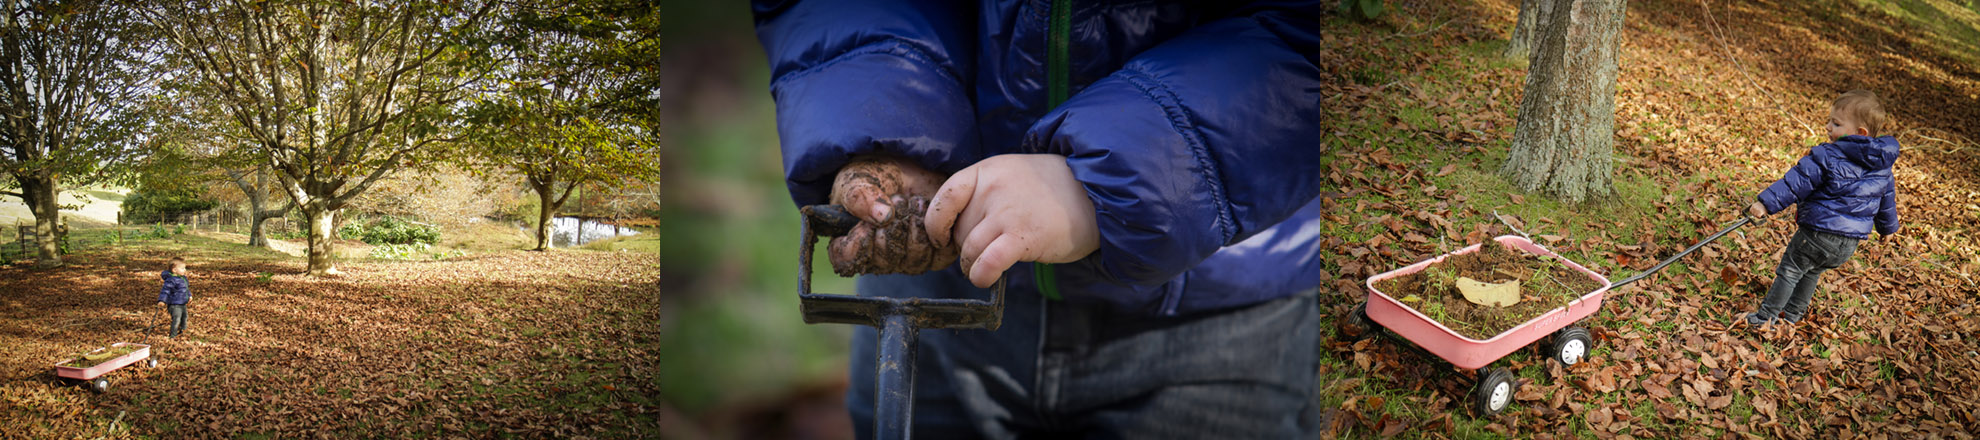 Hamilton-photographer-outdoor-play-session-with-toddler.jpg